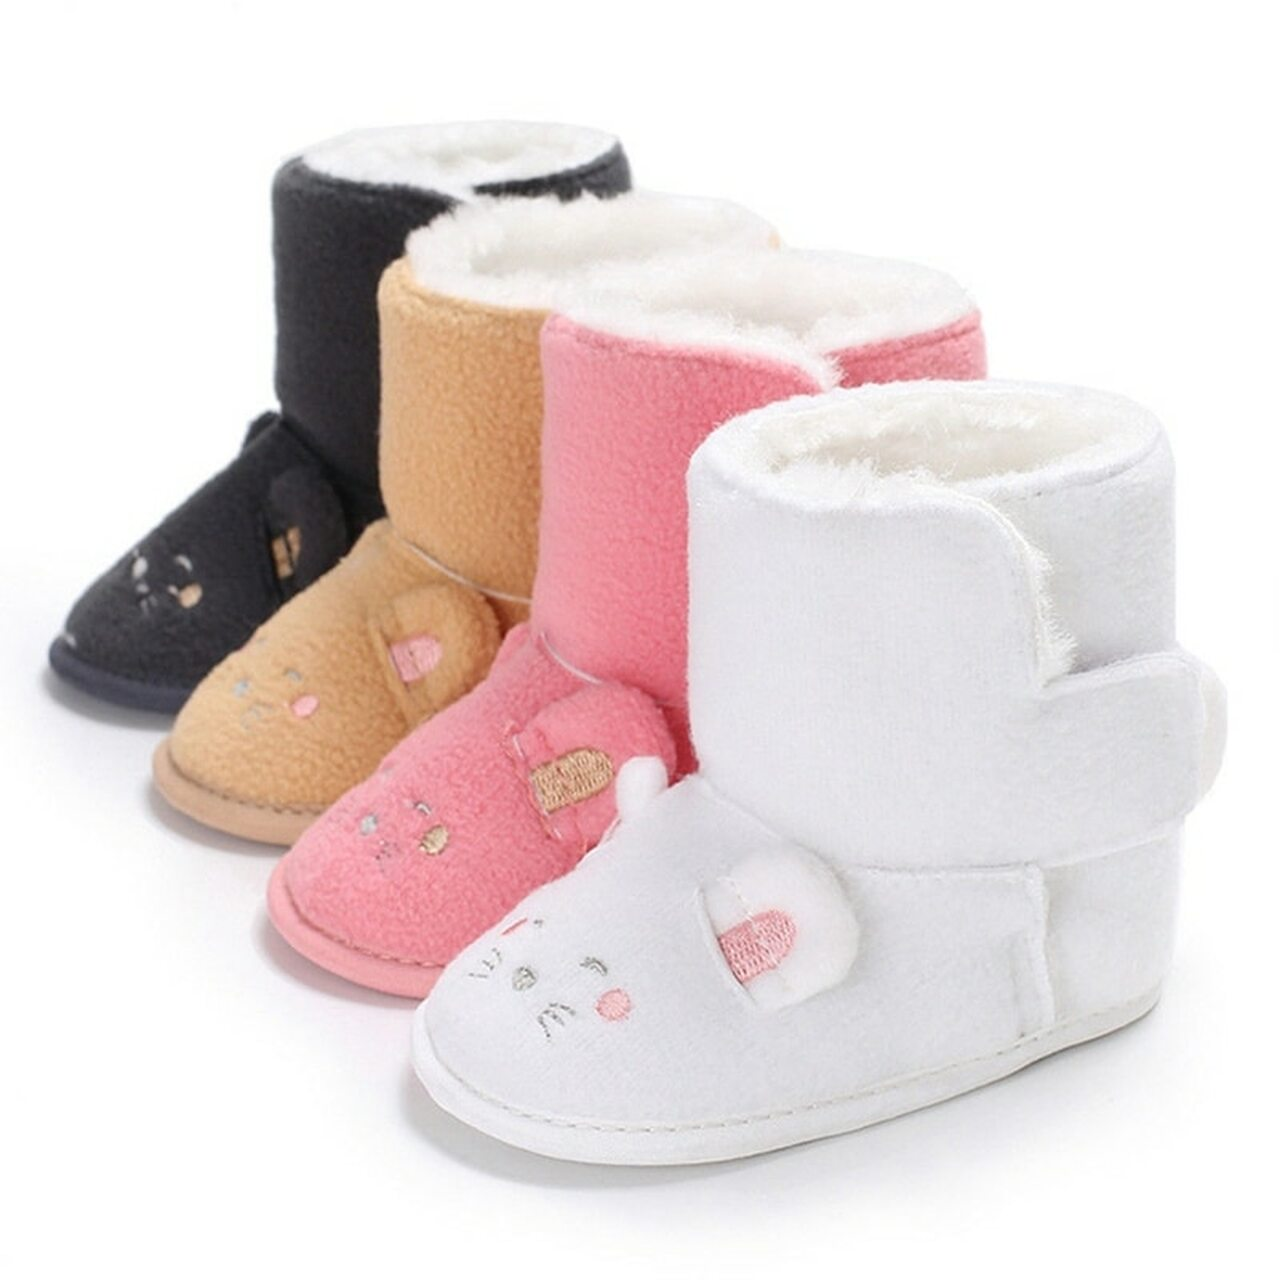 WARM BABY GIRL TODDLER INFANT WINTER WARM BOOTS COTTON BUTTON SHOES COLORS NEW